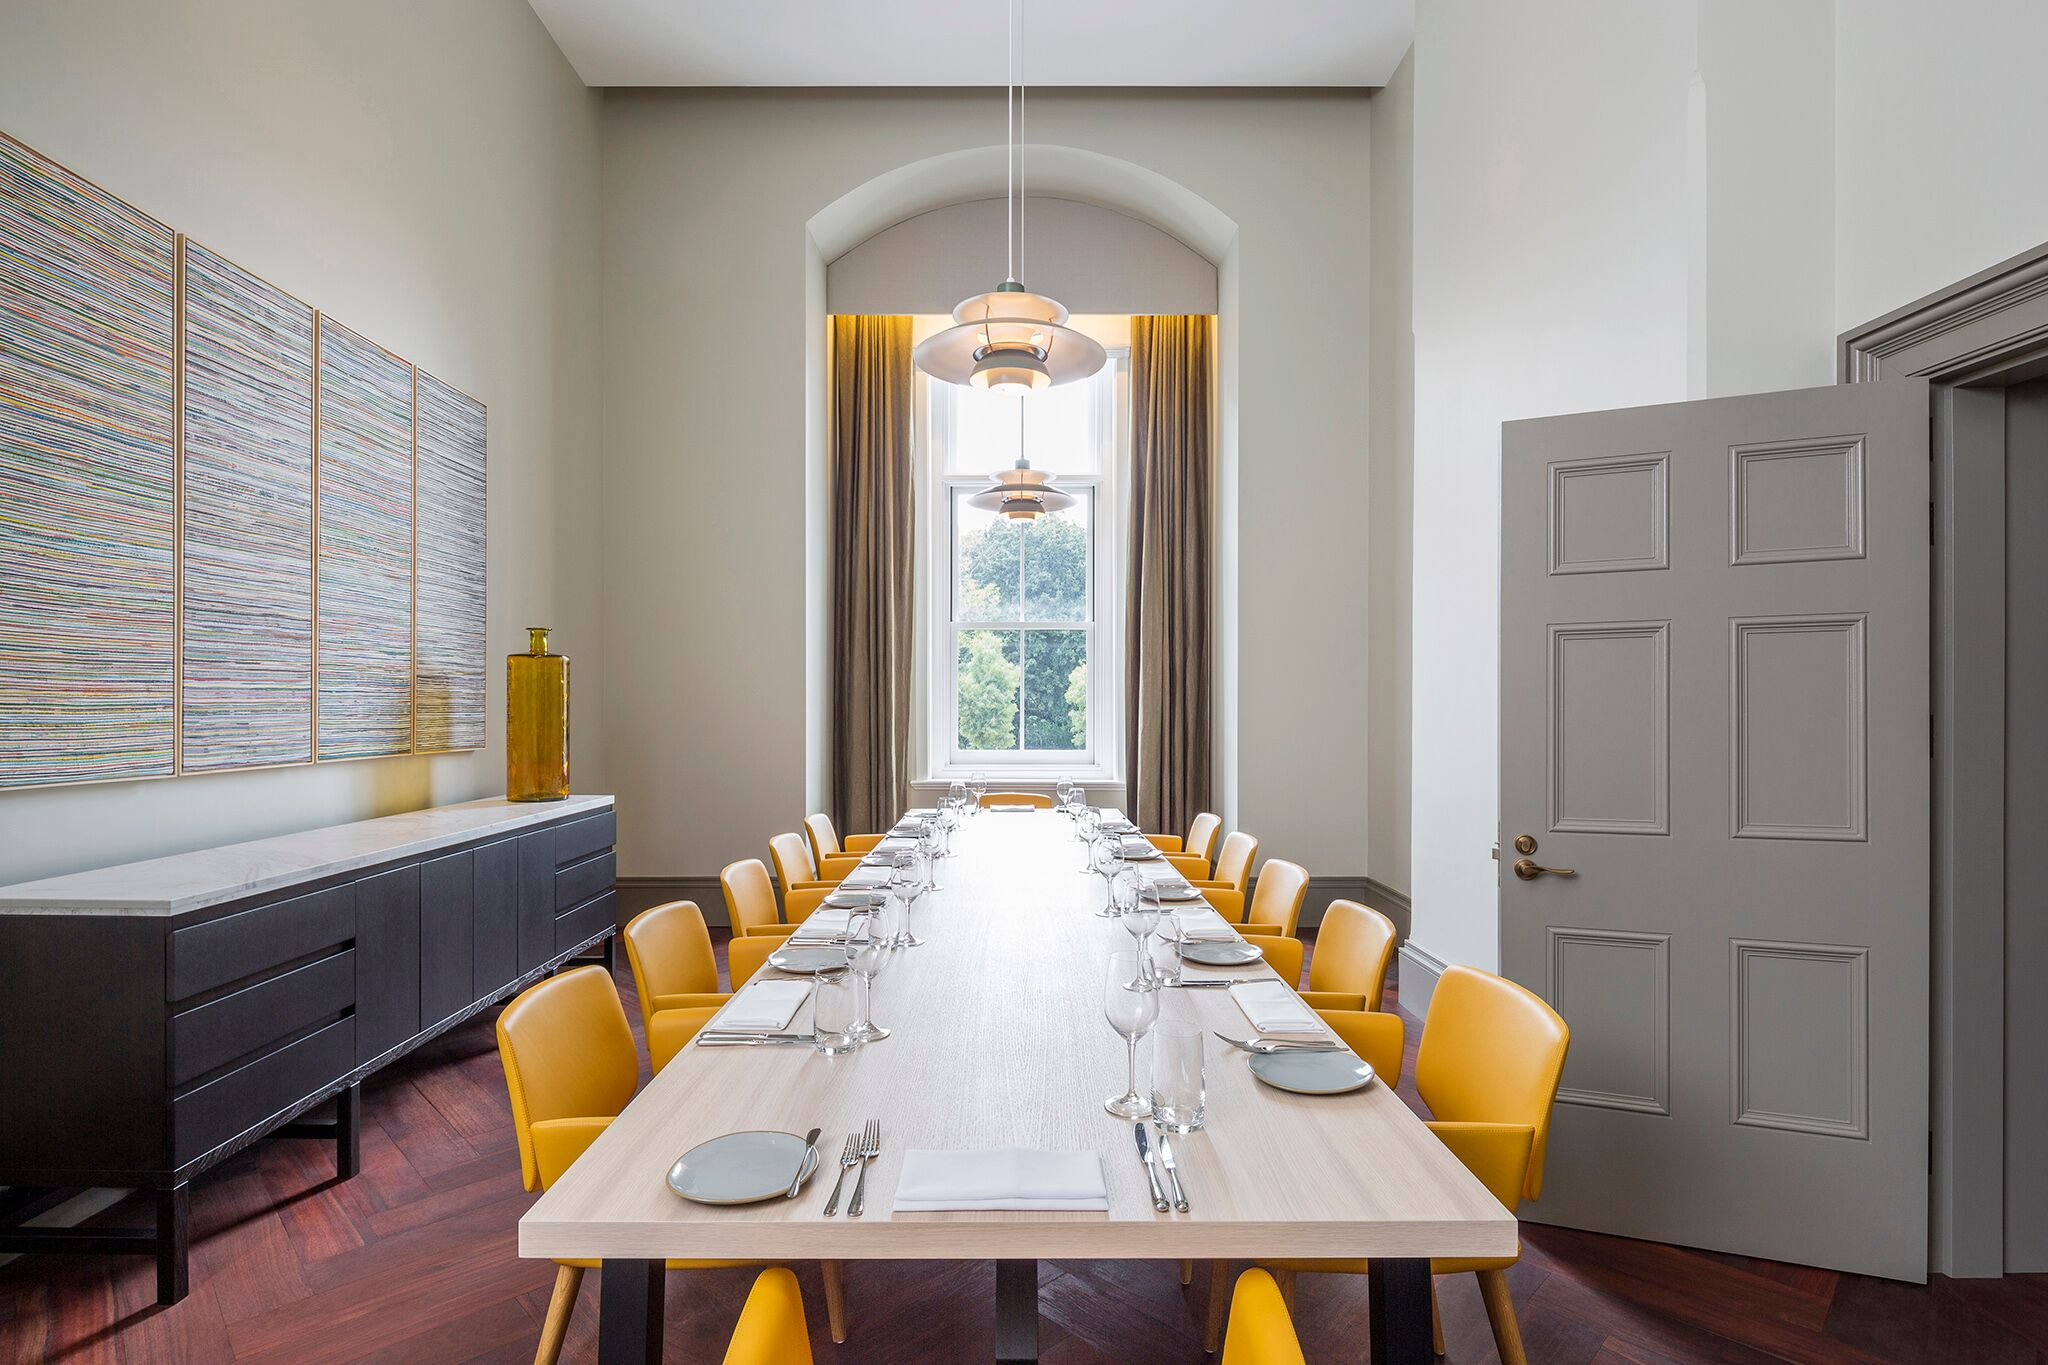 Post_Private_Dining_Room_preview.jpeg